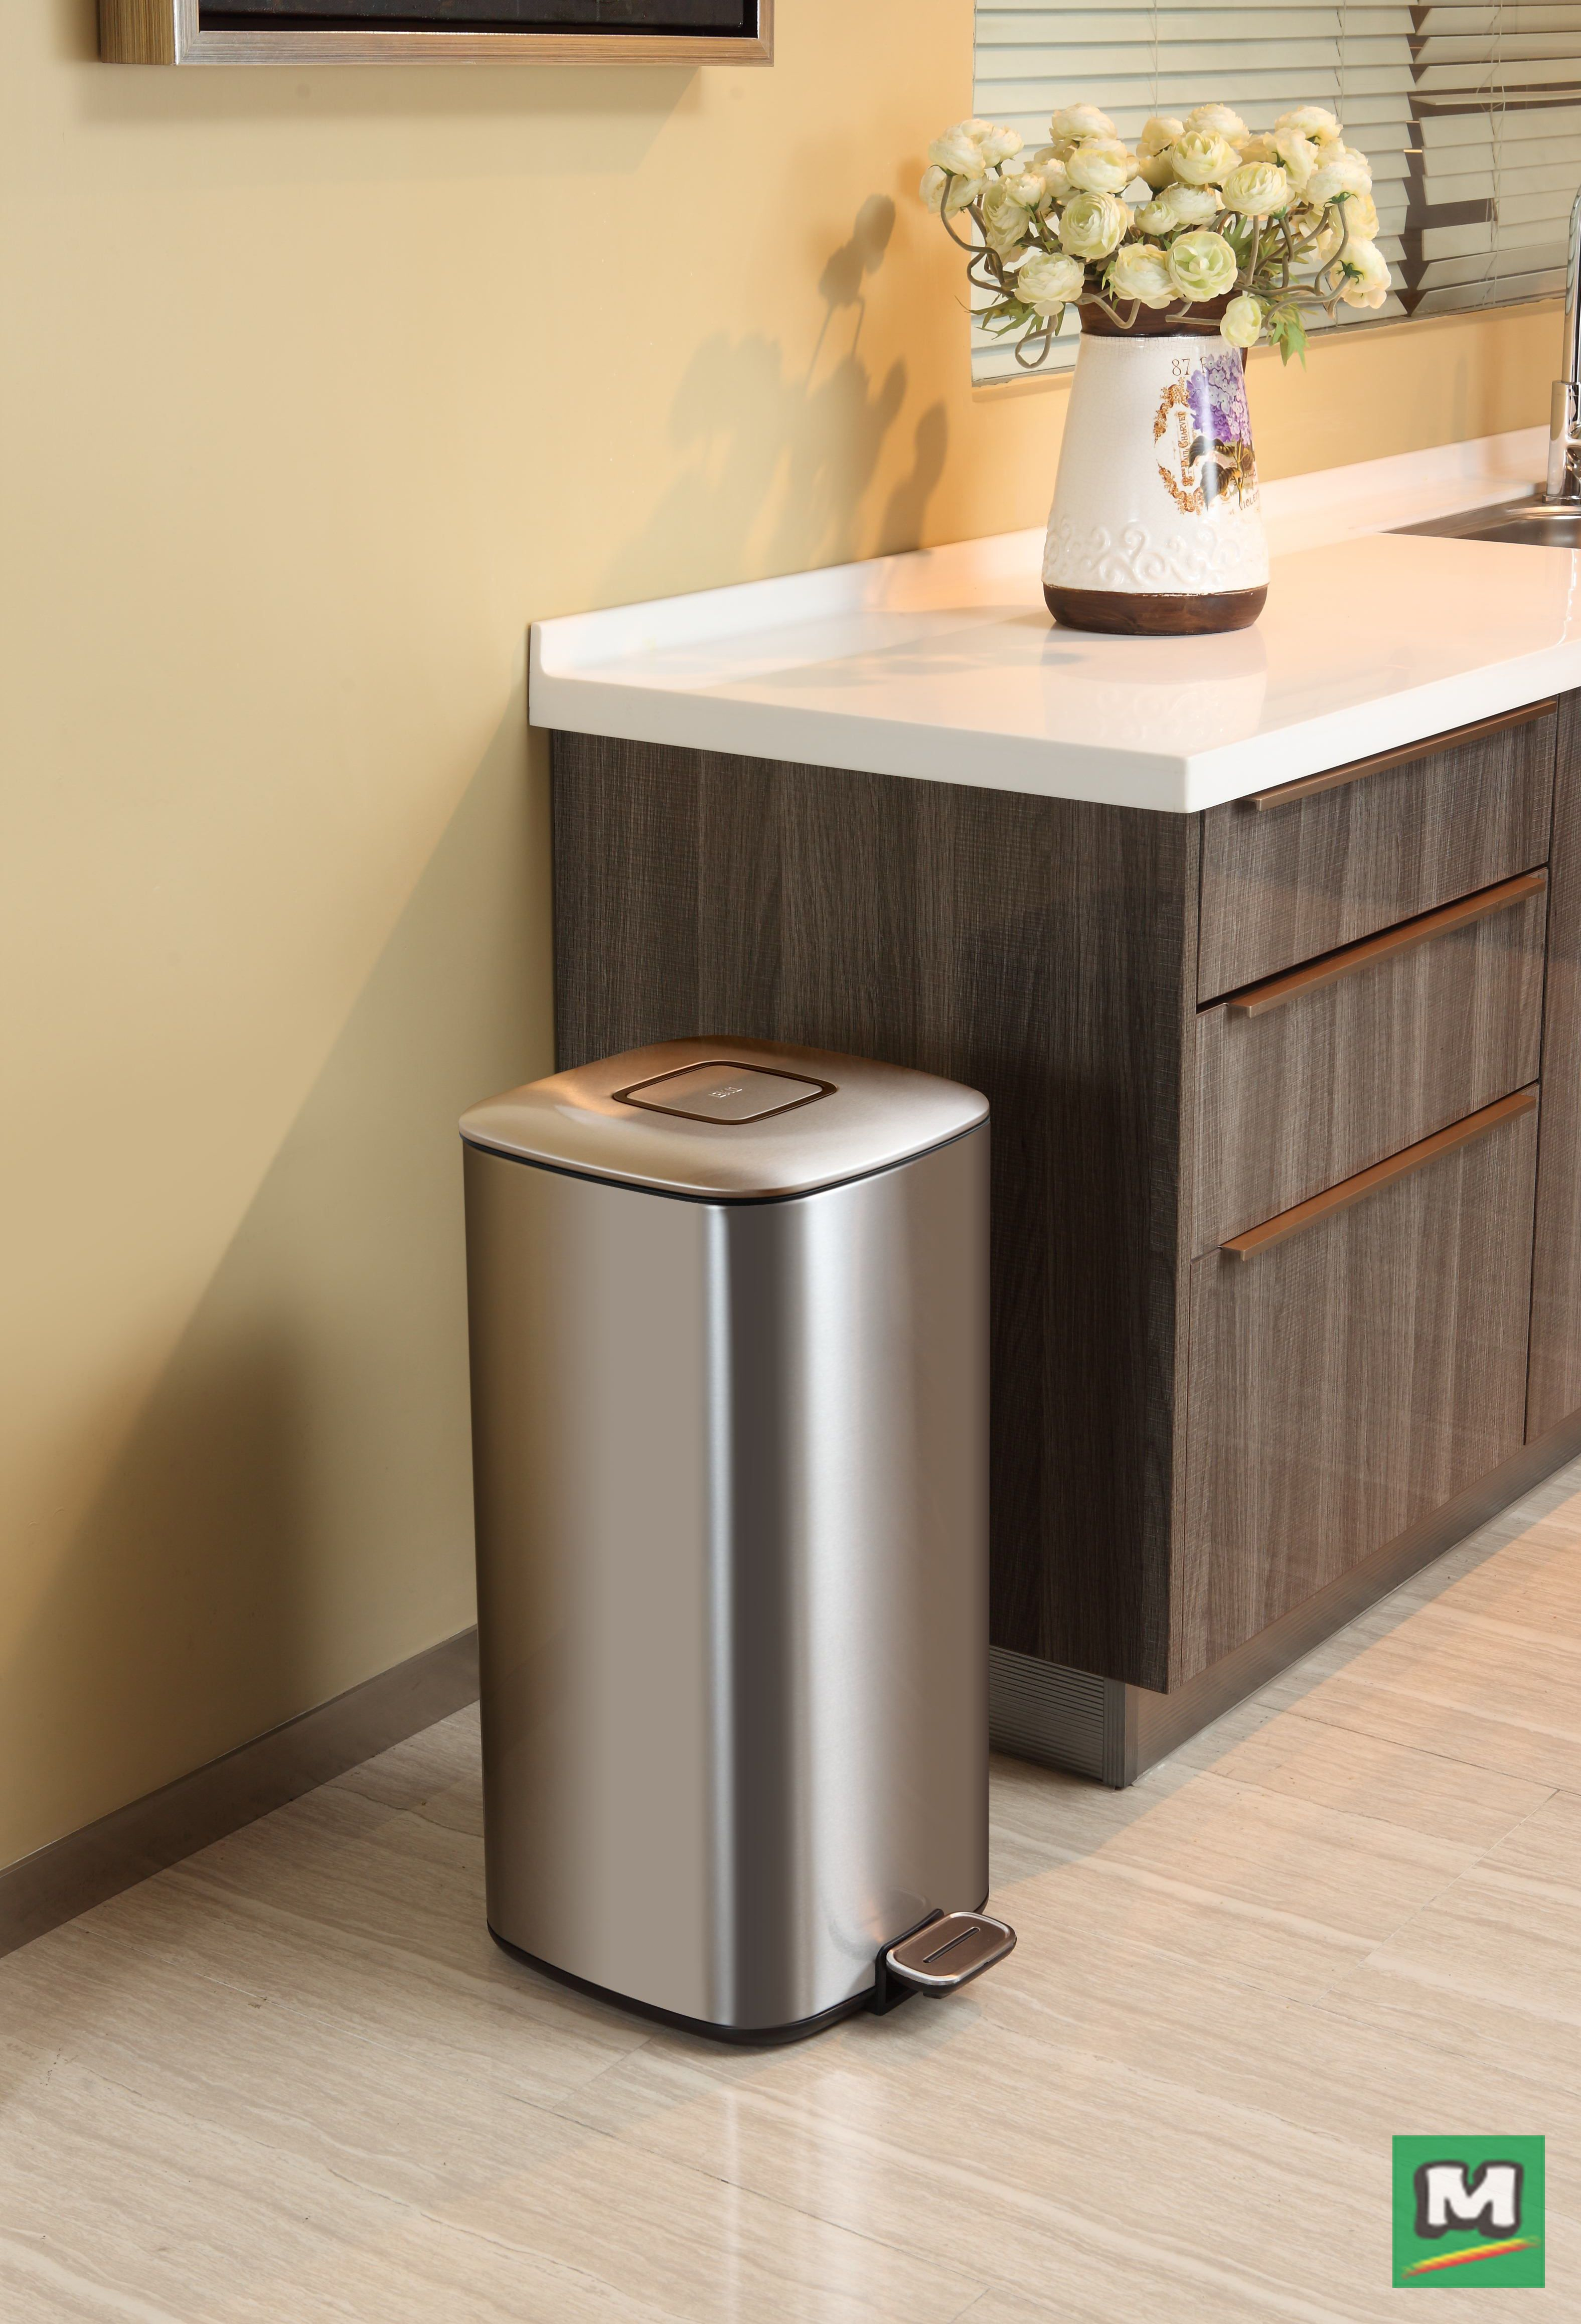 Tidy Up Your Kitchen With An EKO Regent 32 Liter Square Trash Can. Featuring